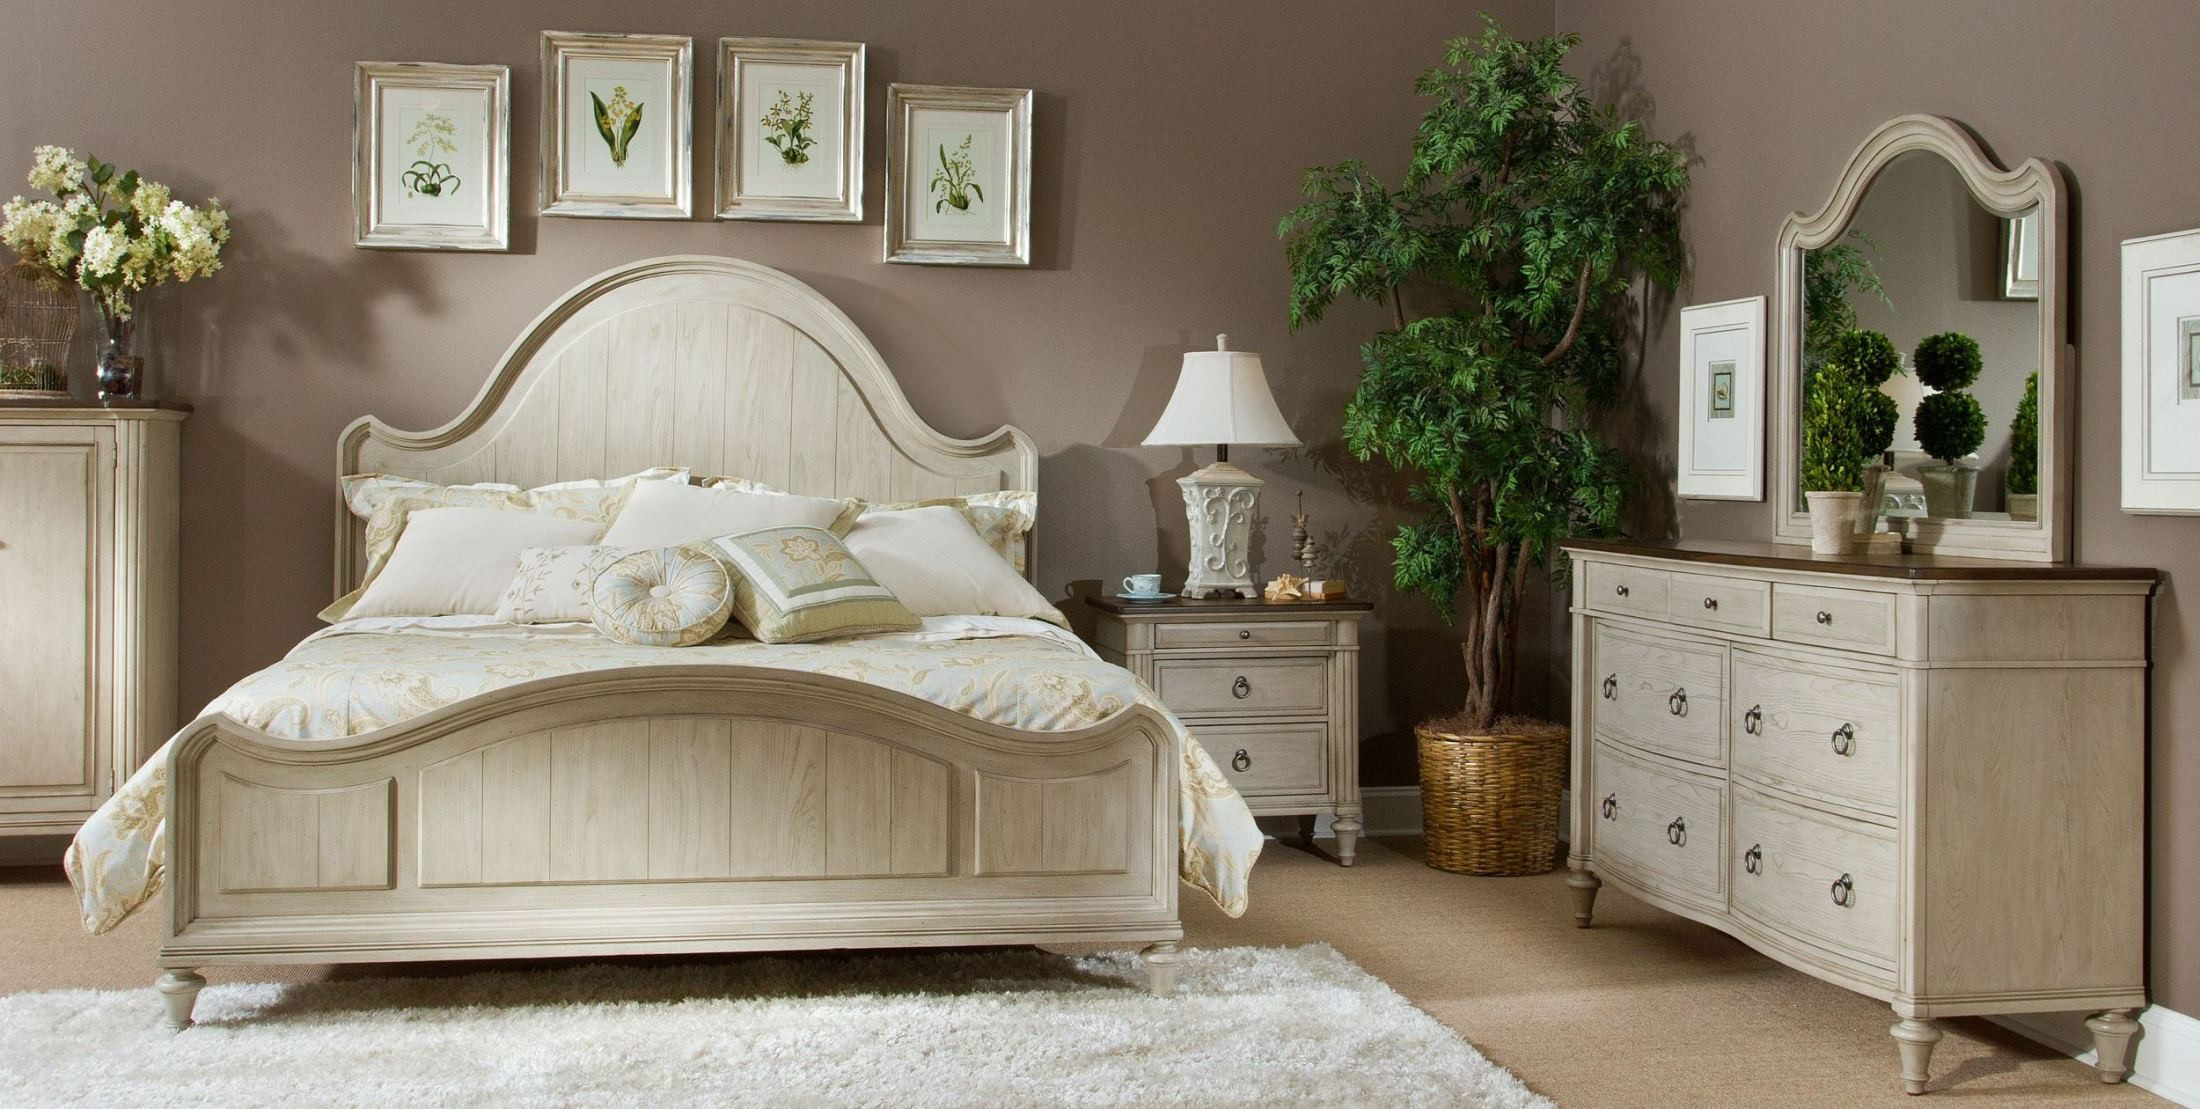 Rocky point beechnut and clay bedroom set from fairmont designs coleman furniture for Fairmont designs bedroom furniture sets